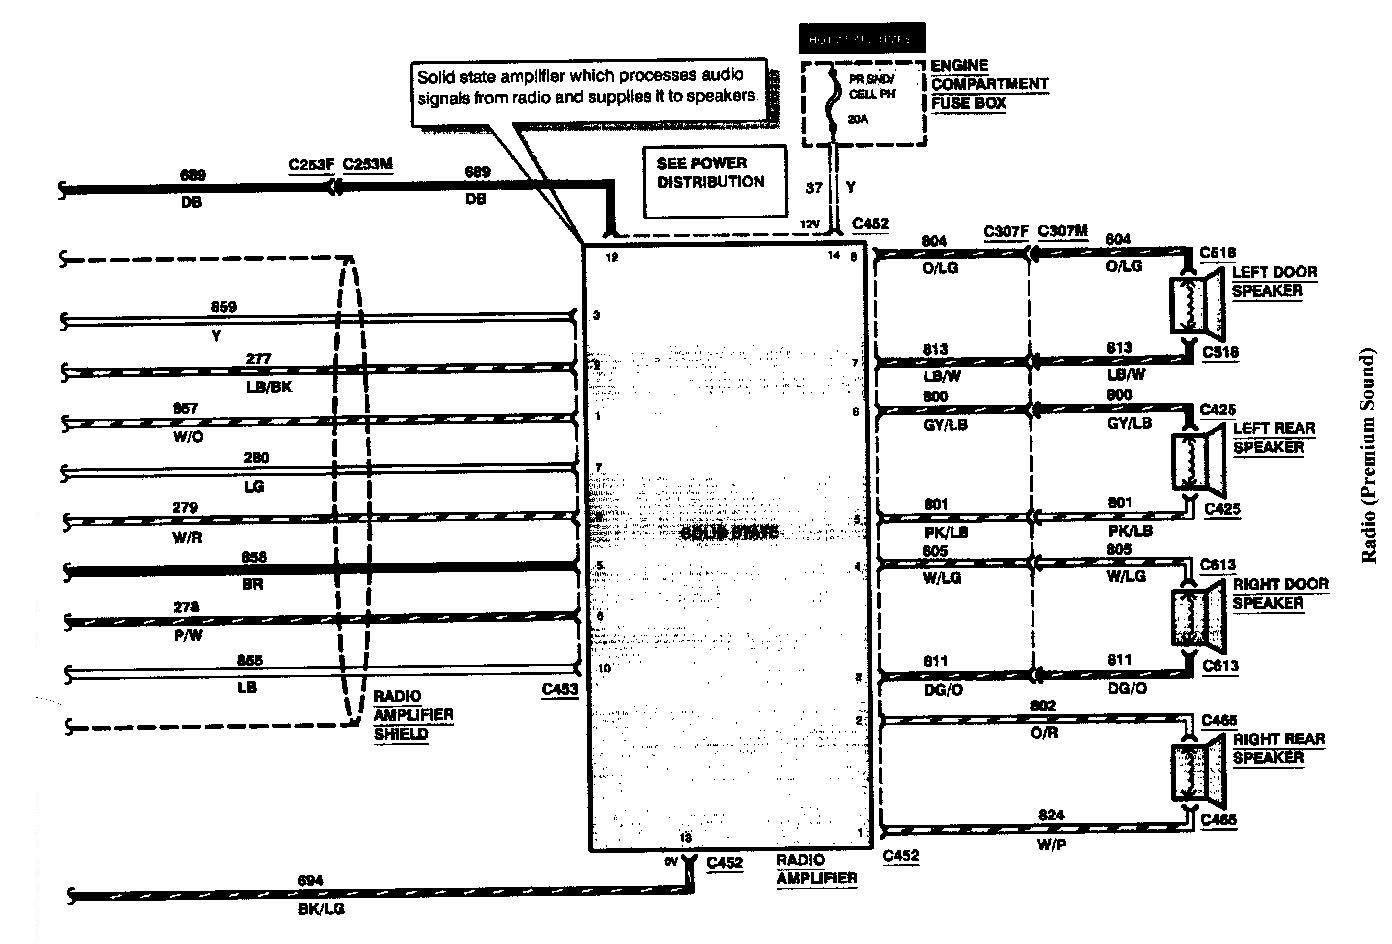 95Mark8 Premium Sound Wiring2 95 mark 8 jbl wiring diagram needed lincolns online message forum 2001 lincoln continental radio wiring diagram at aneh.co